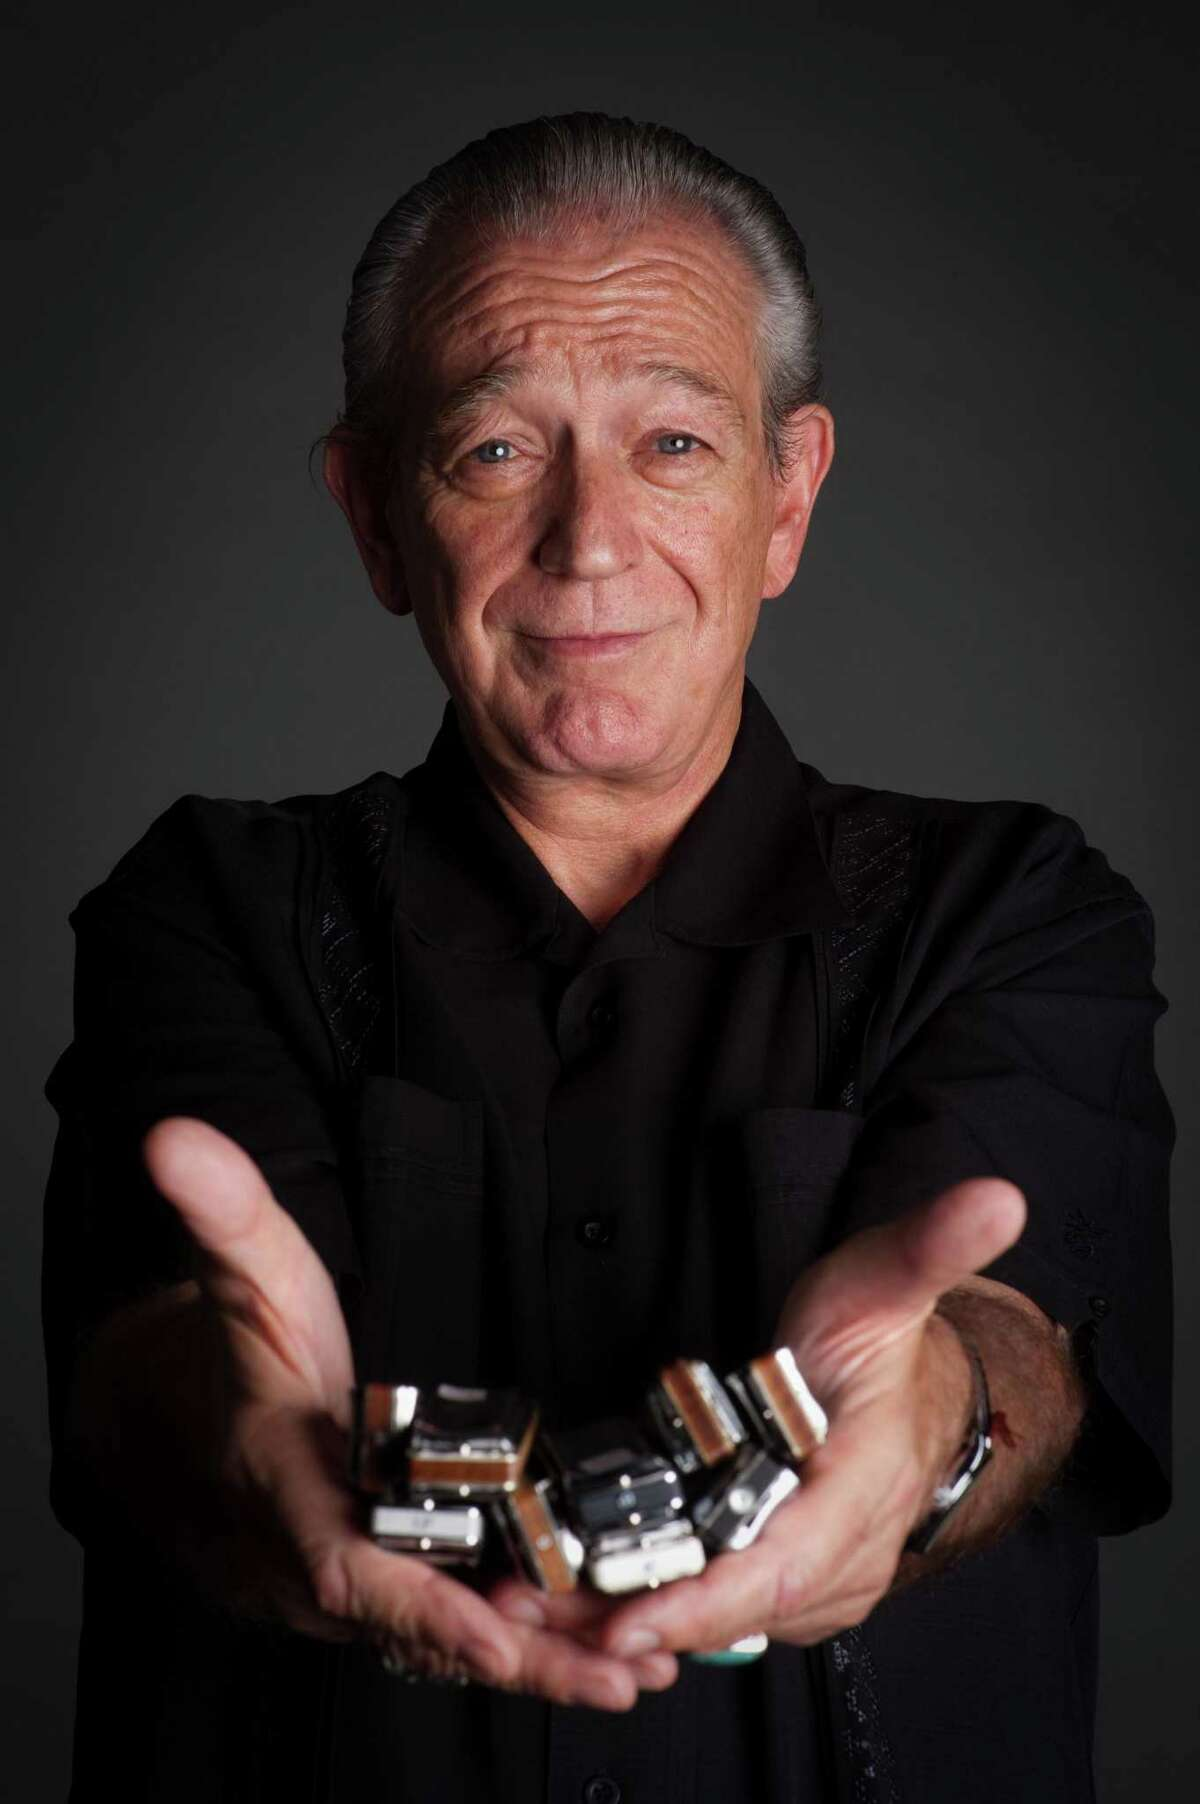 Blues harmonica great Charlie Musselwhite will perform Thursday night, Feb. 27, 2020, at Infinity Hall in Hartford. Showtime is 8 p.m. (Doors at 7 p.m.) Tickets are $49-$69, available in advance at https://www.infinityhall.com.